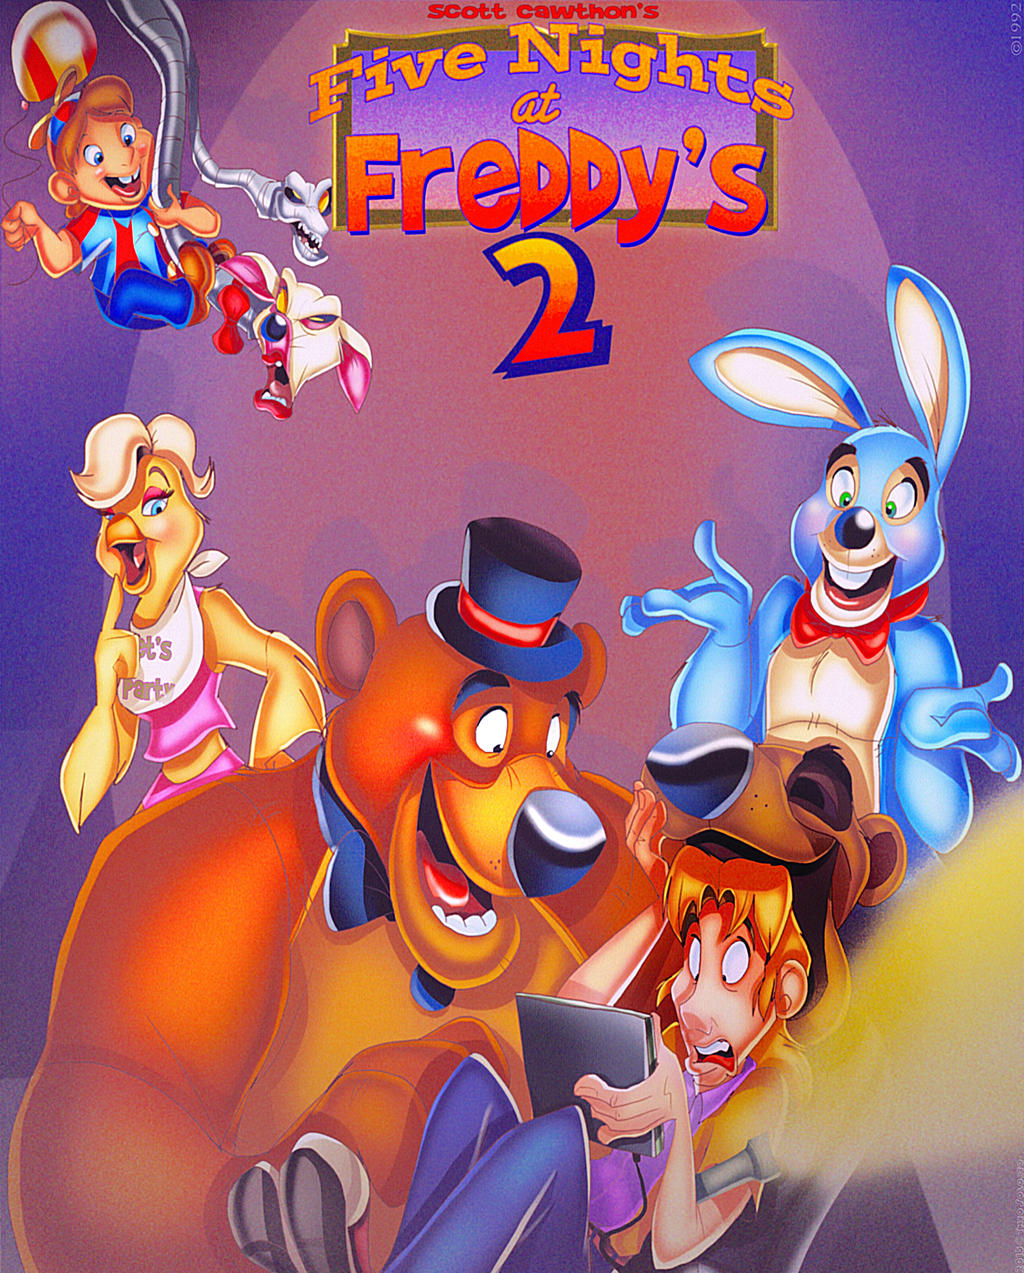 30767 in addition Show 883 together with 457653 together with Sakura Background moreover Images Background. on disney cartoon background